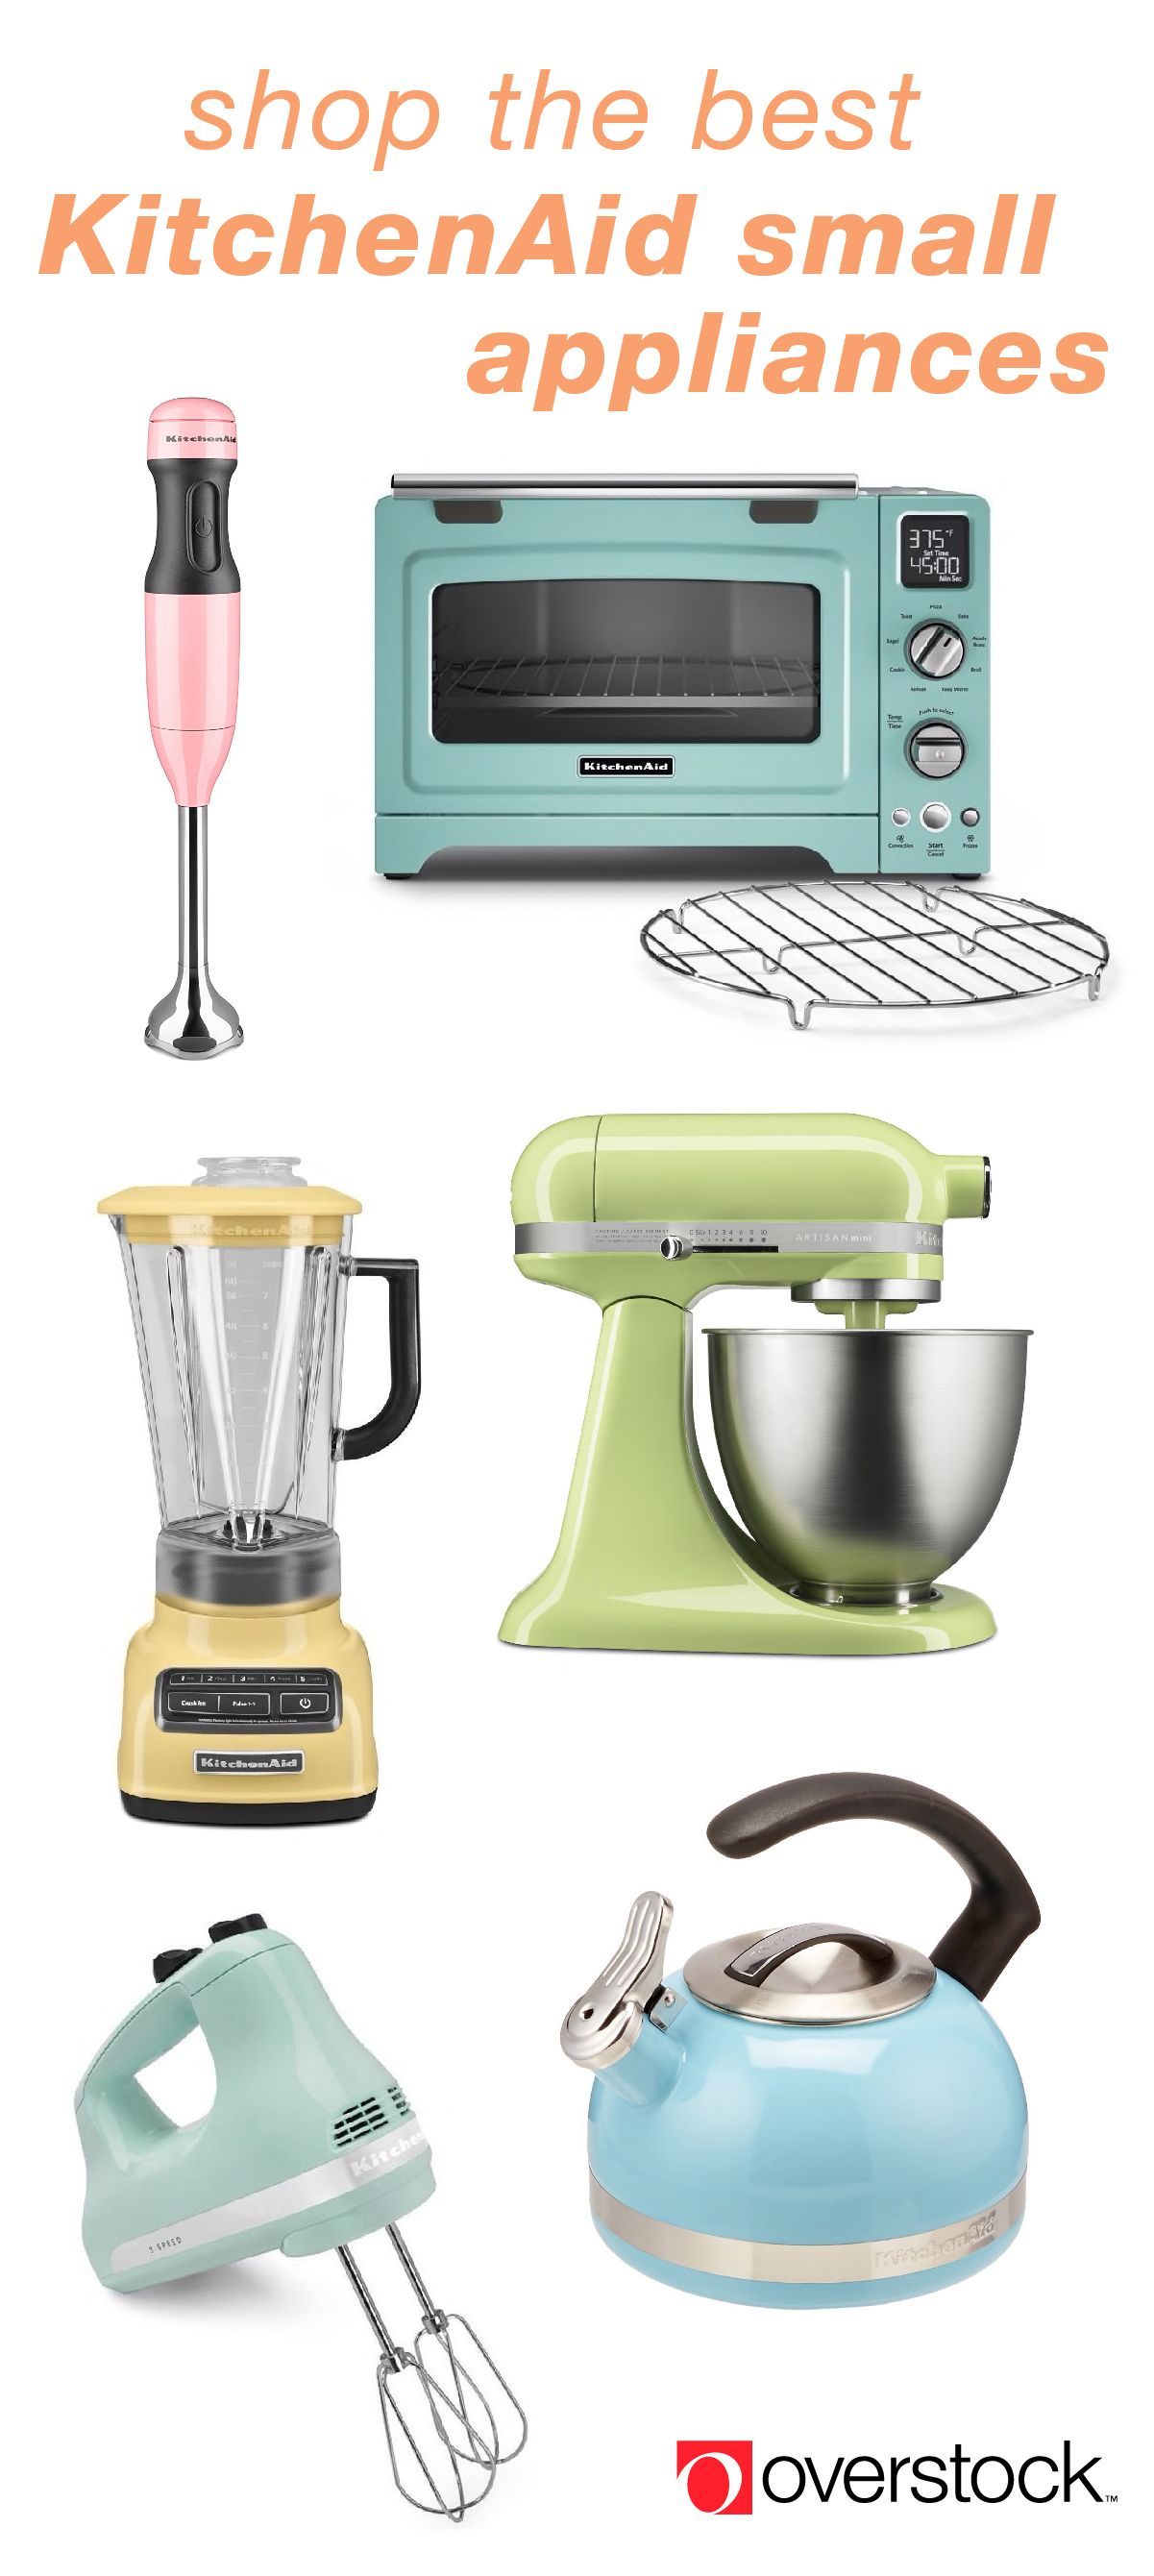 Shop The Best Kitchenaid Small Appliances Kitchen Aid Kitchenaid Small Appliances Outdoor Kitchen Appliances